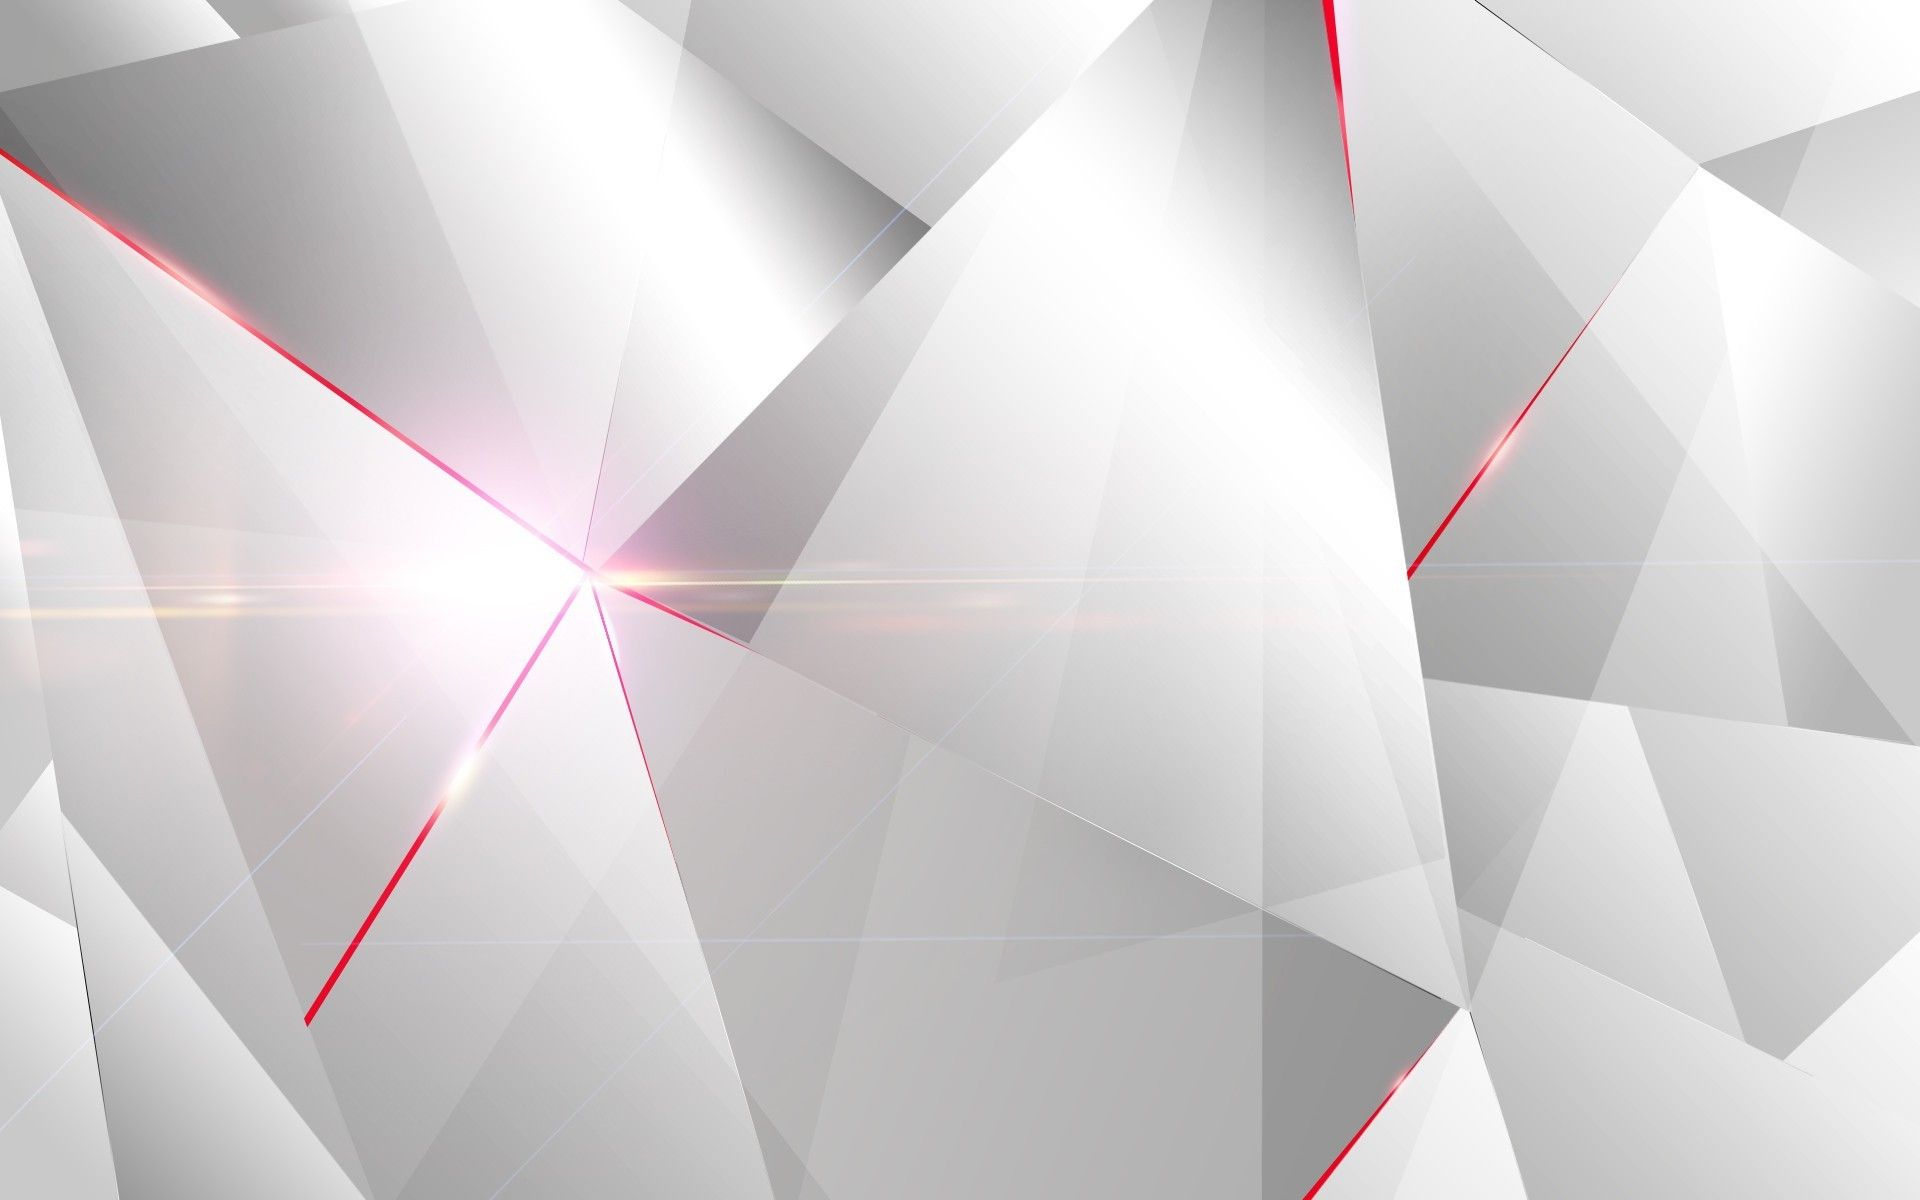 Abstract Geometry Triangles White 2562397 1920x1200 1920x